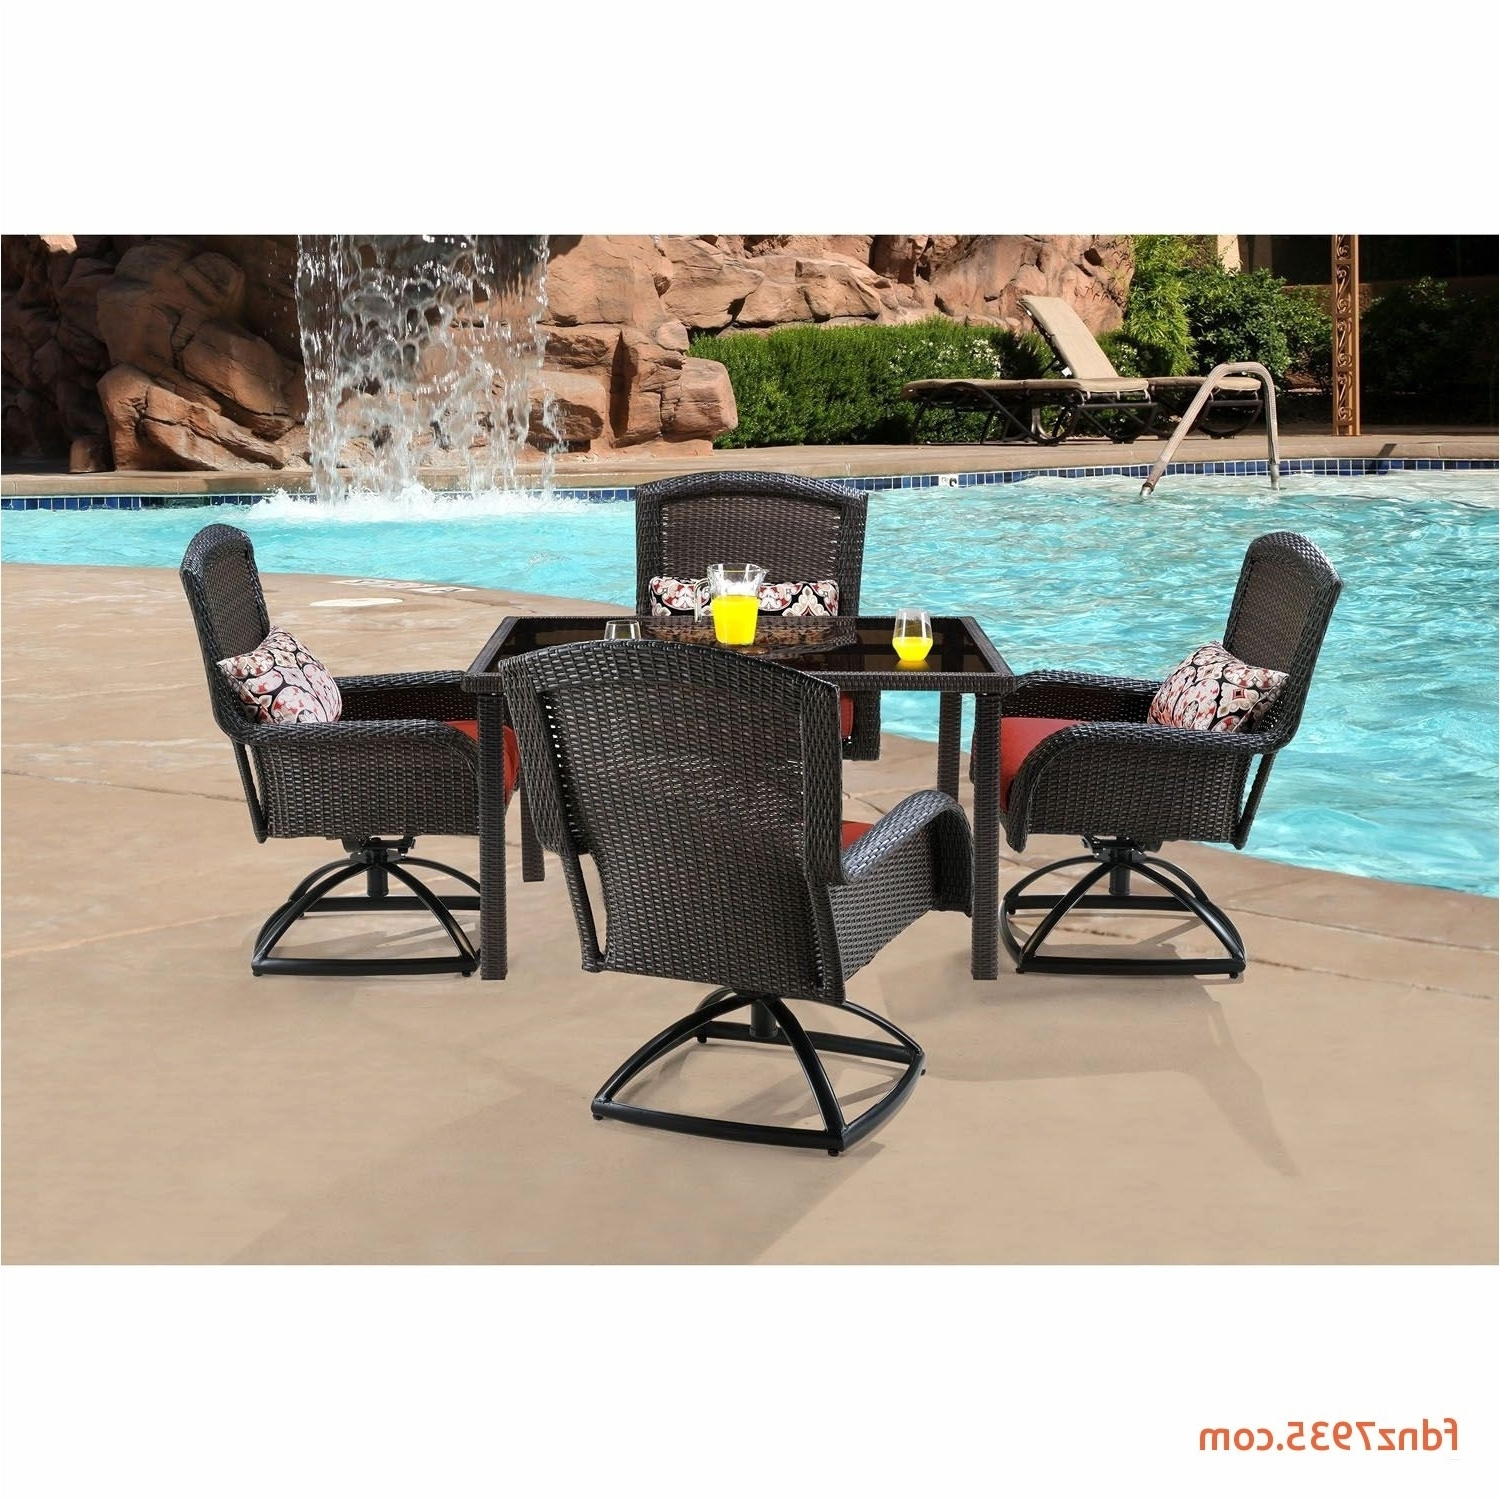 Most Recent Kirkland Patio Umbrellas Within Outdoor Furniture Austin Best Of Kirkland Patio Furniture Furniture (View 17 of 20)